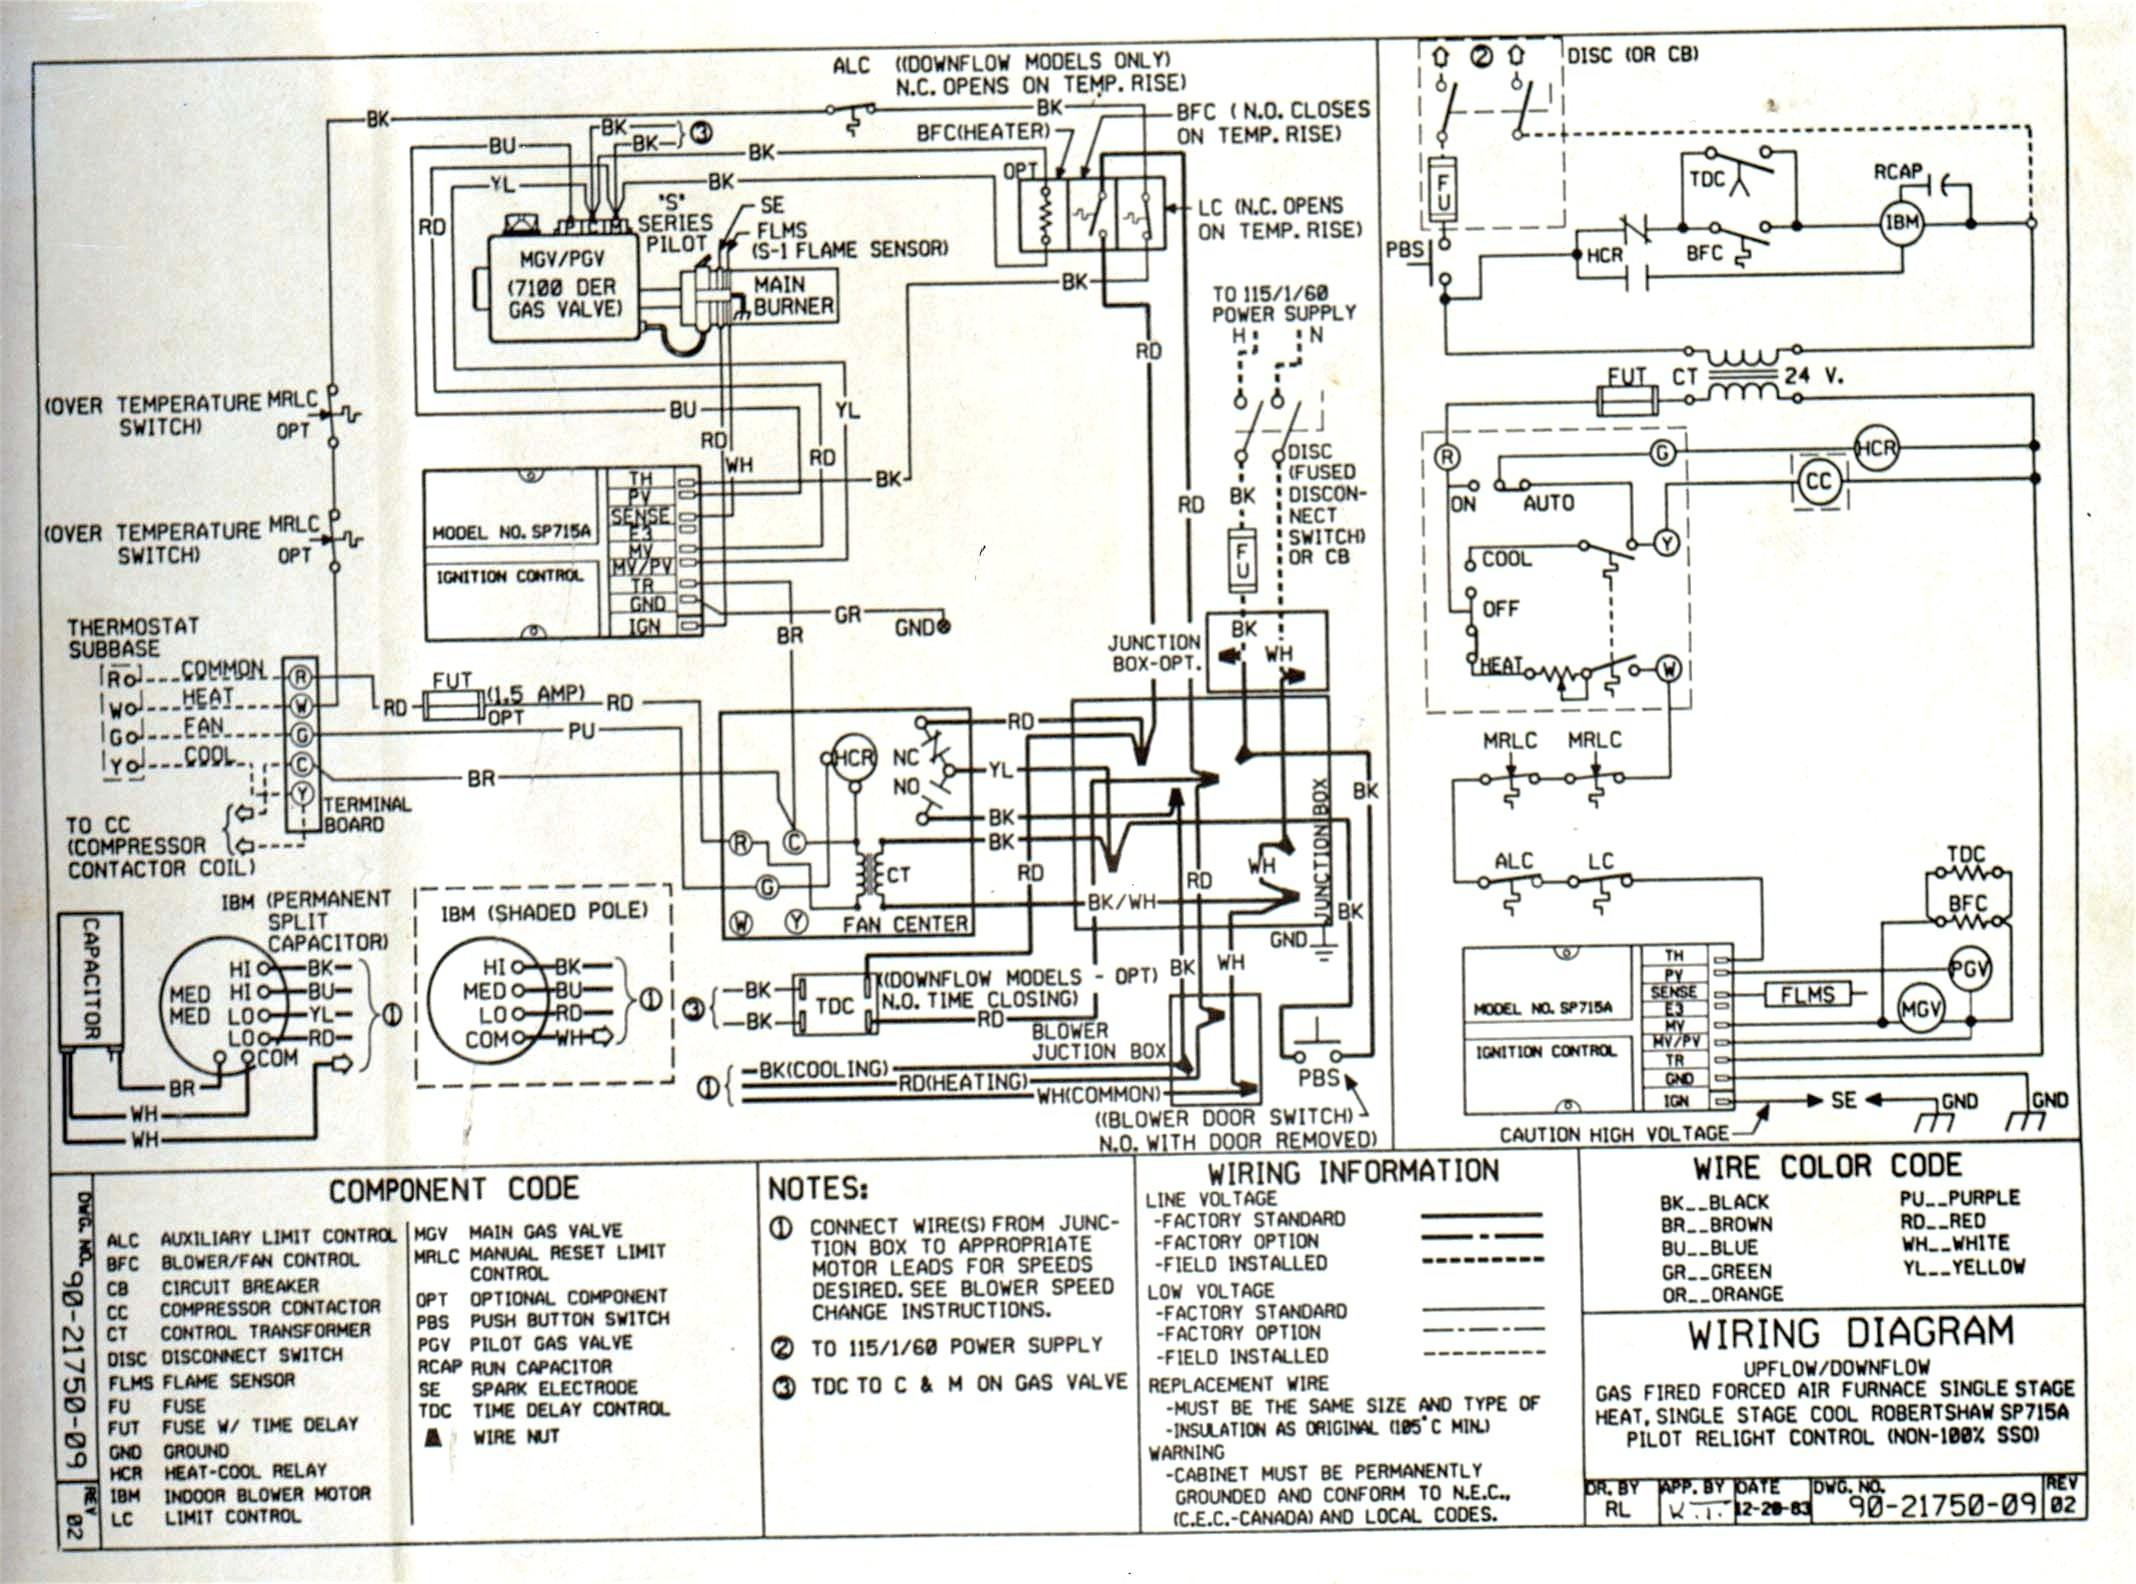 air conditioner wiring diagram Download-Wiring Diagram For Air Conditioning Unit Best Mcquay Air Conditioner Wiring Diagram Best Mcquay Wiring Diagram New 20-e